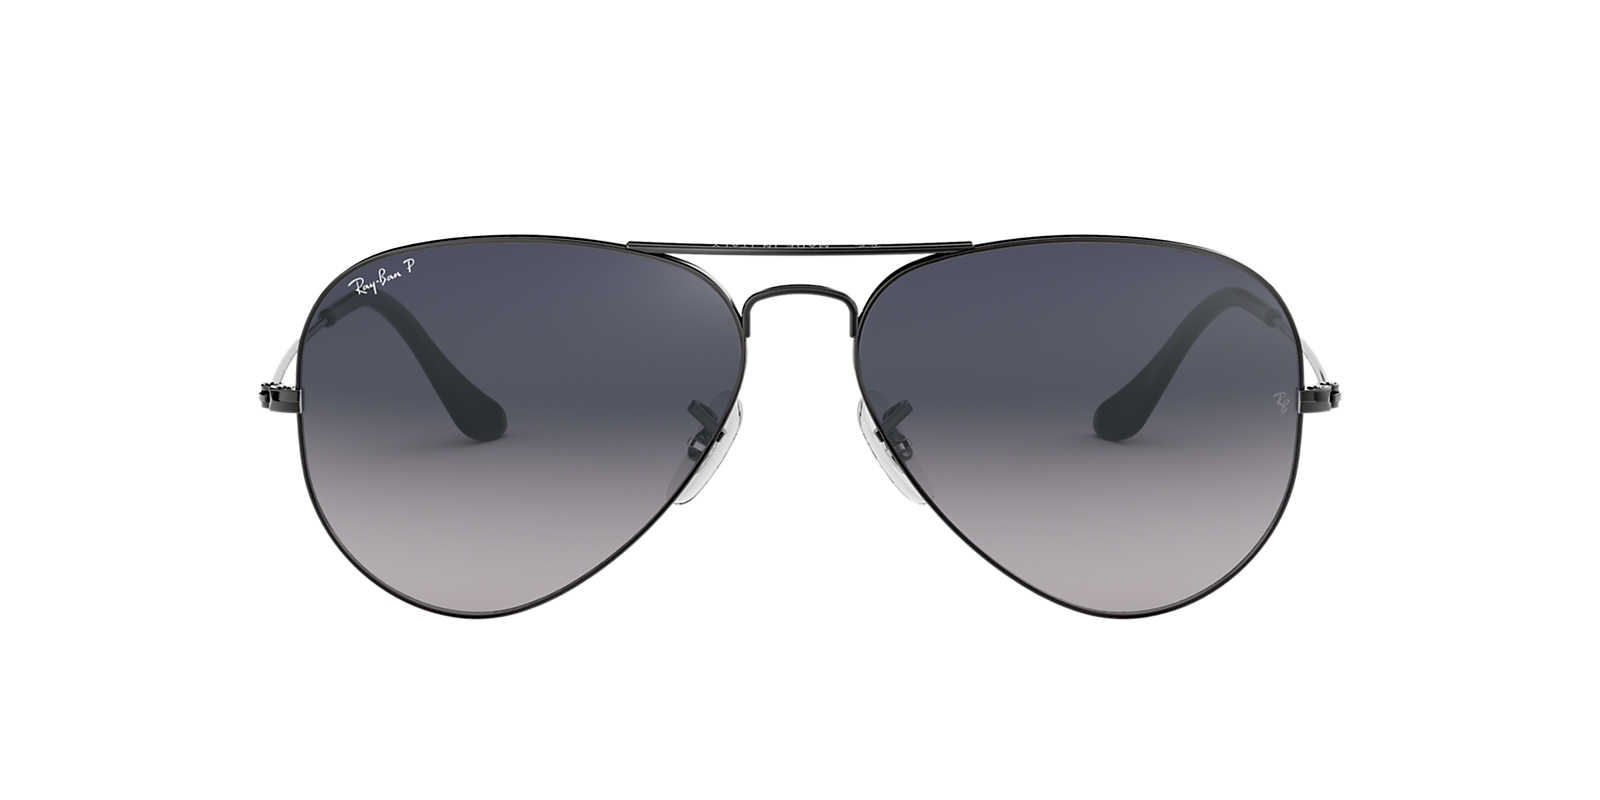 original sunglasses  Ray-Ban RB3025 55 ORIGINAL AVIATOR 55 Blue \u0026 Gunmetal Polarized ...